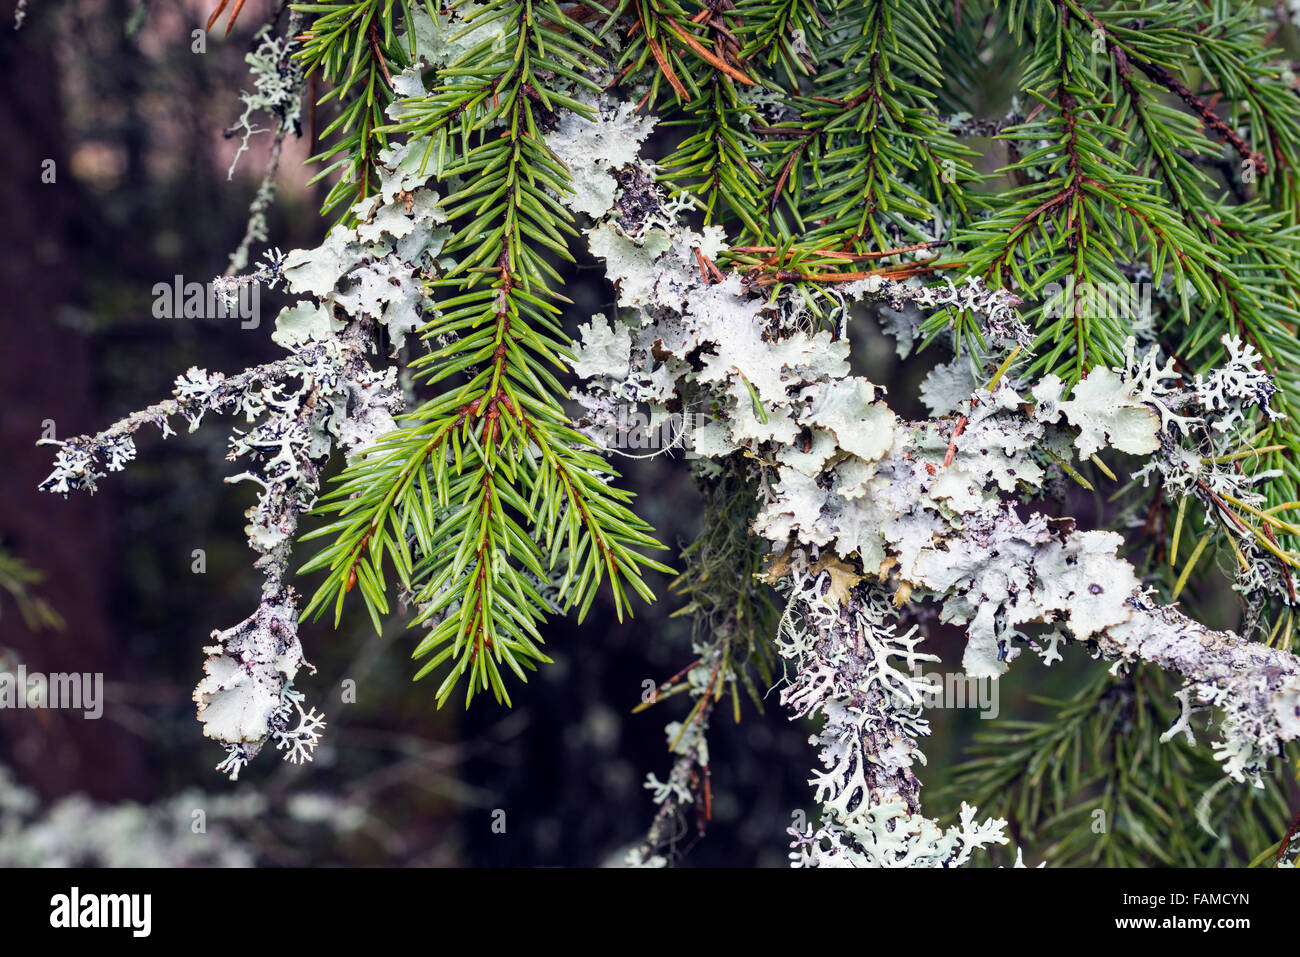 Spruce with ragged lichen - Stock Image